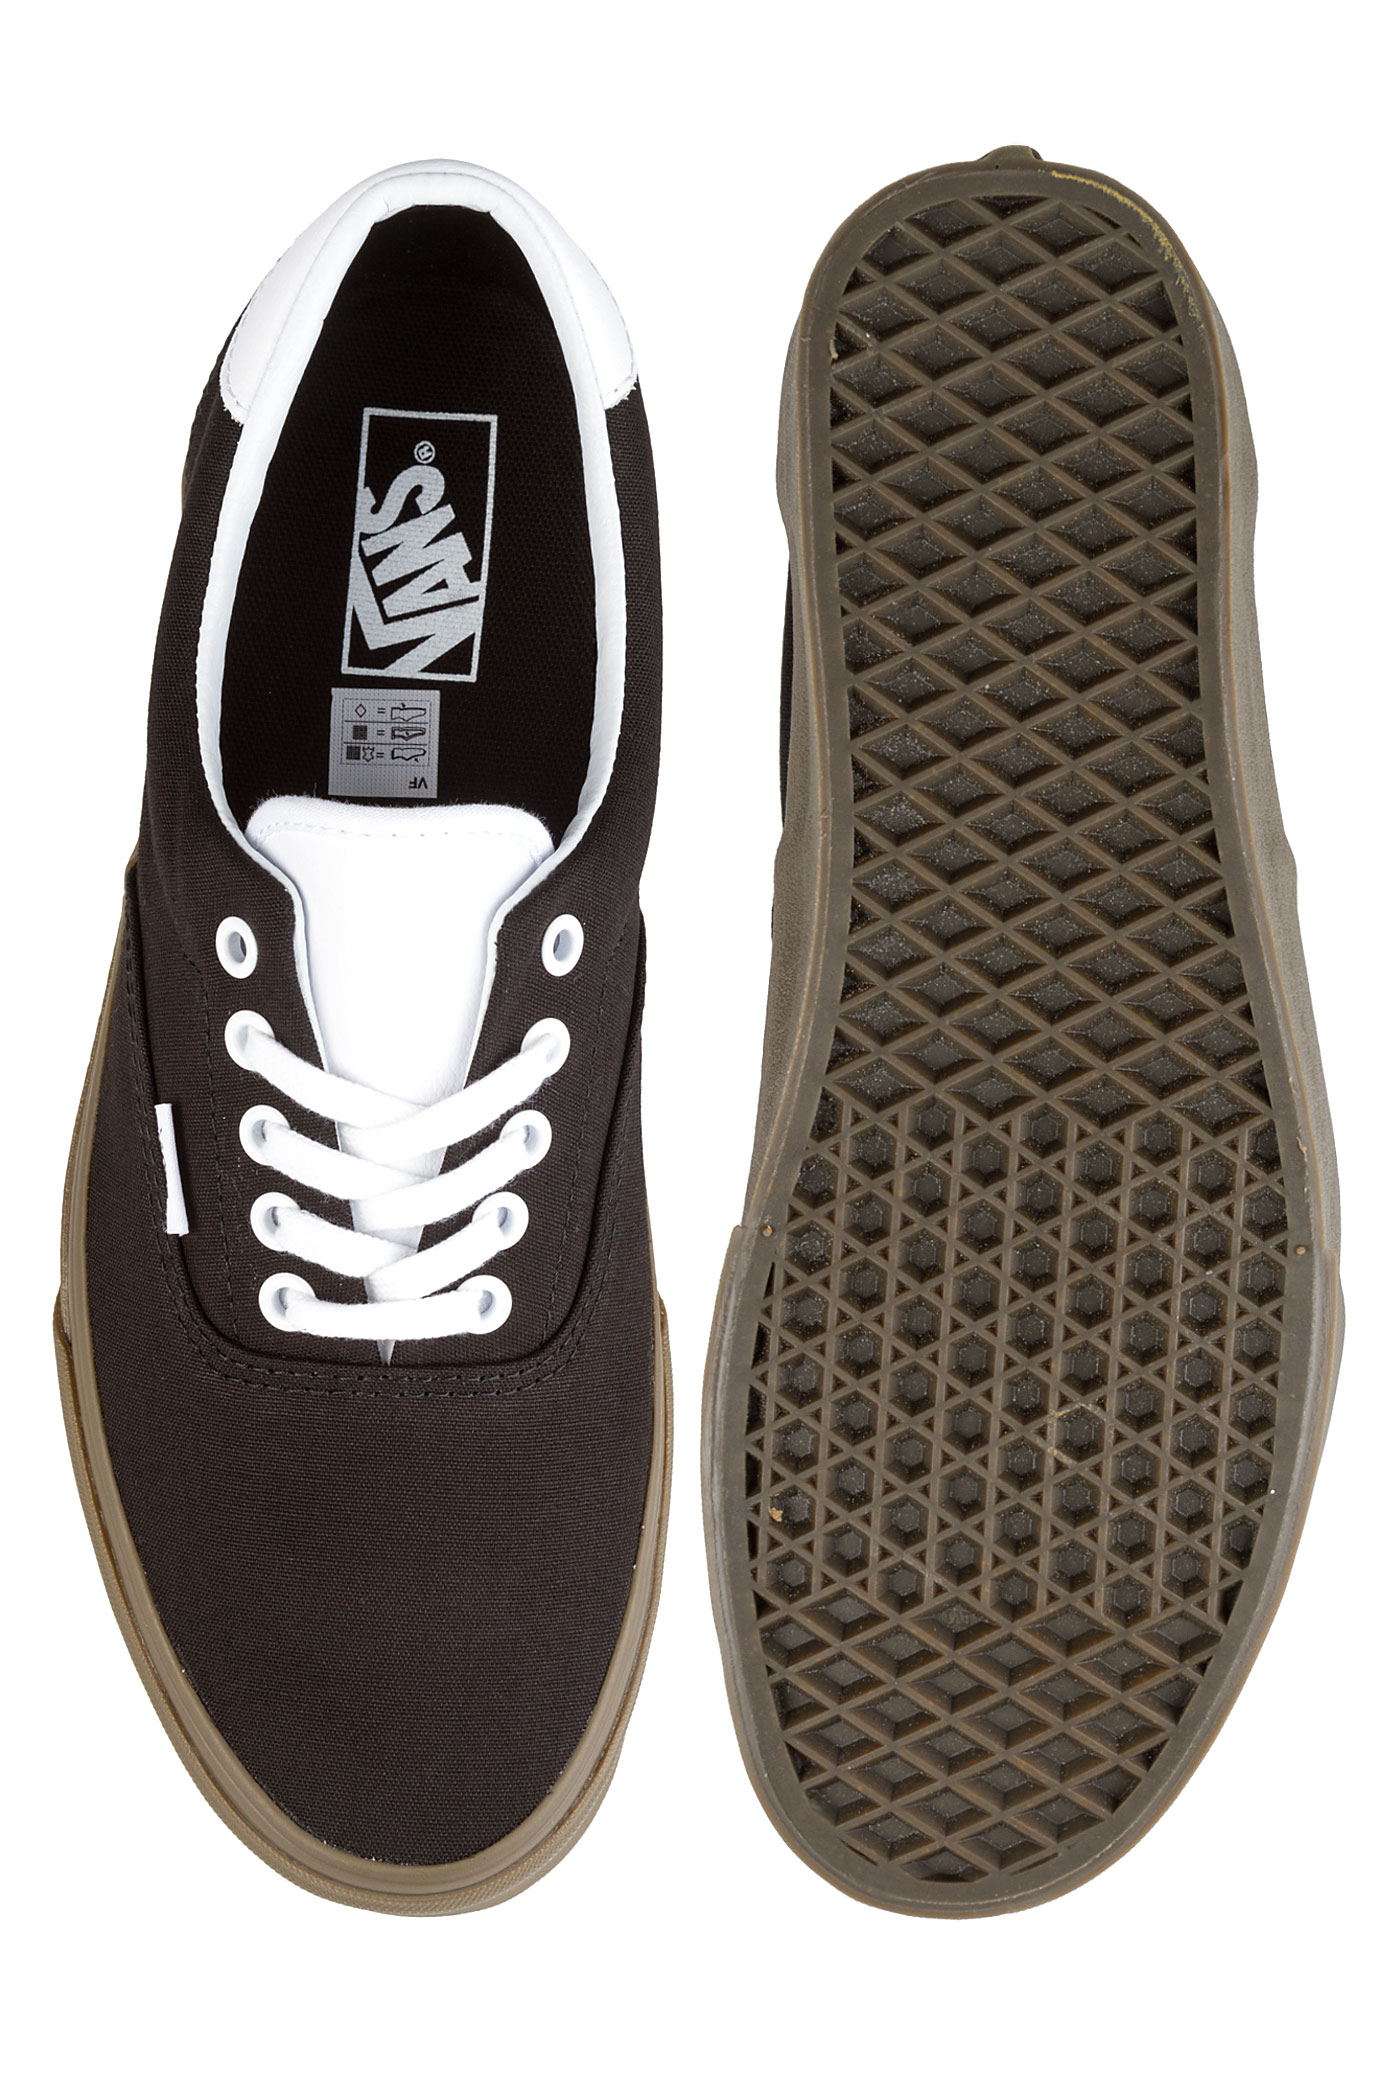 6c587a9726 Vans Bleacher Era 59 Shoes (black gum) buy at skatedeluxe